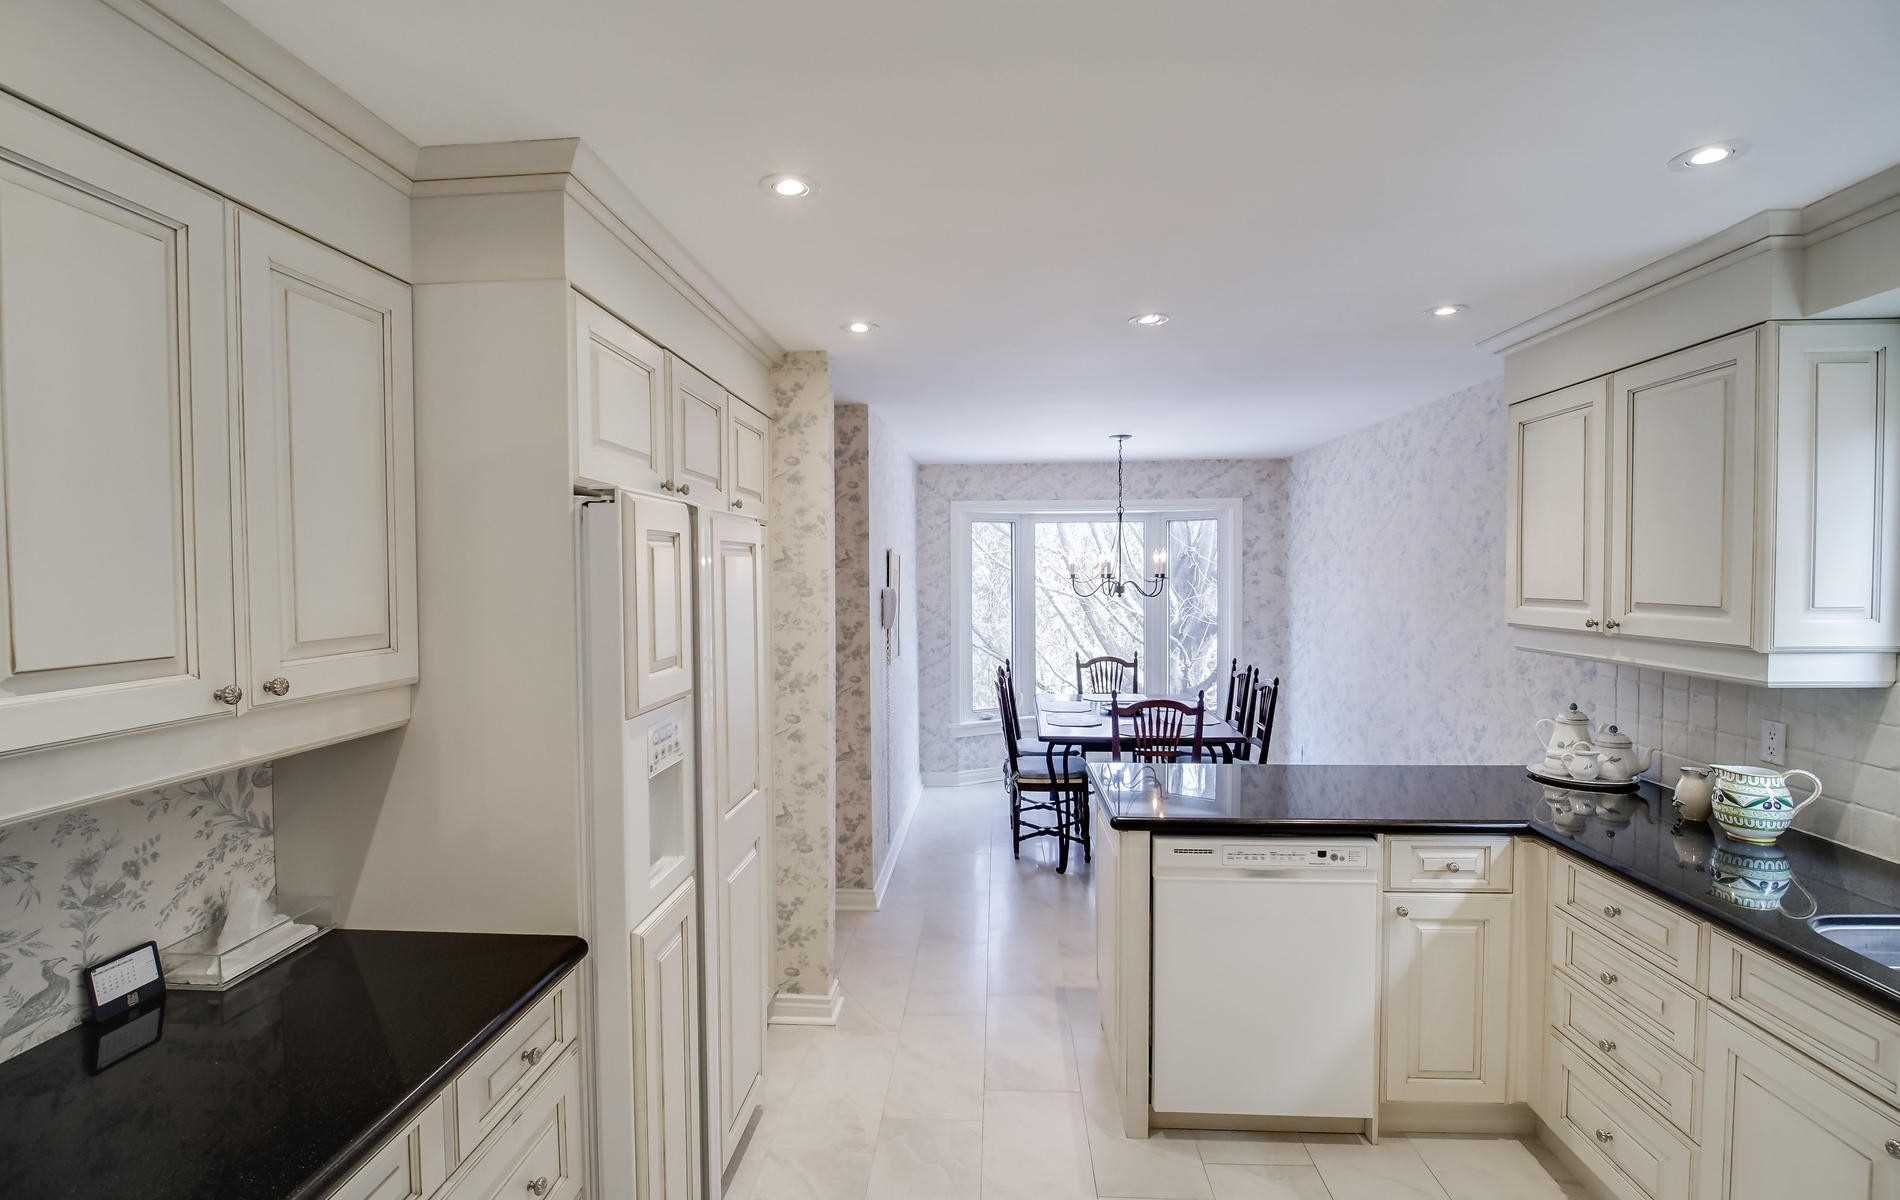 Photo 8: Photos: 498 Hidden Trail in Toronto: Westminster-Branson House (2-Storey) for sale (Toronto C07)  : MLS®# C4709173